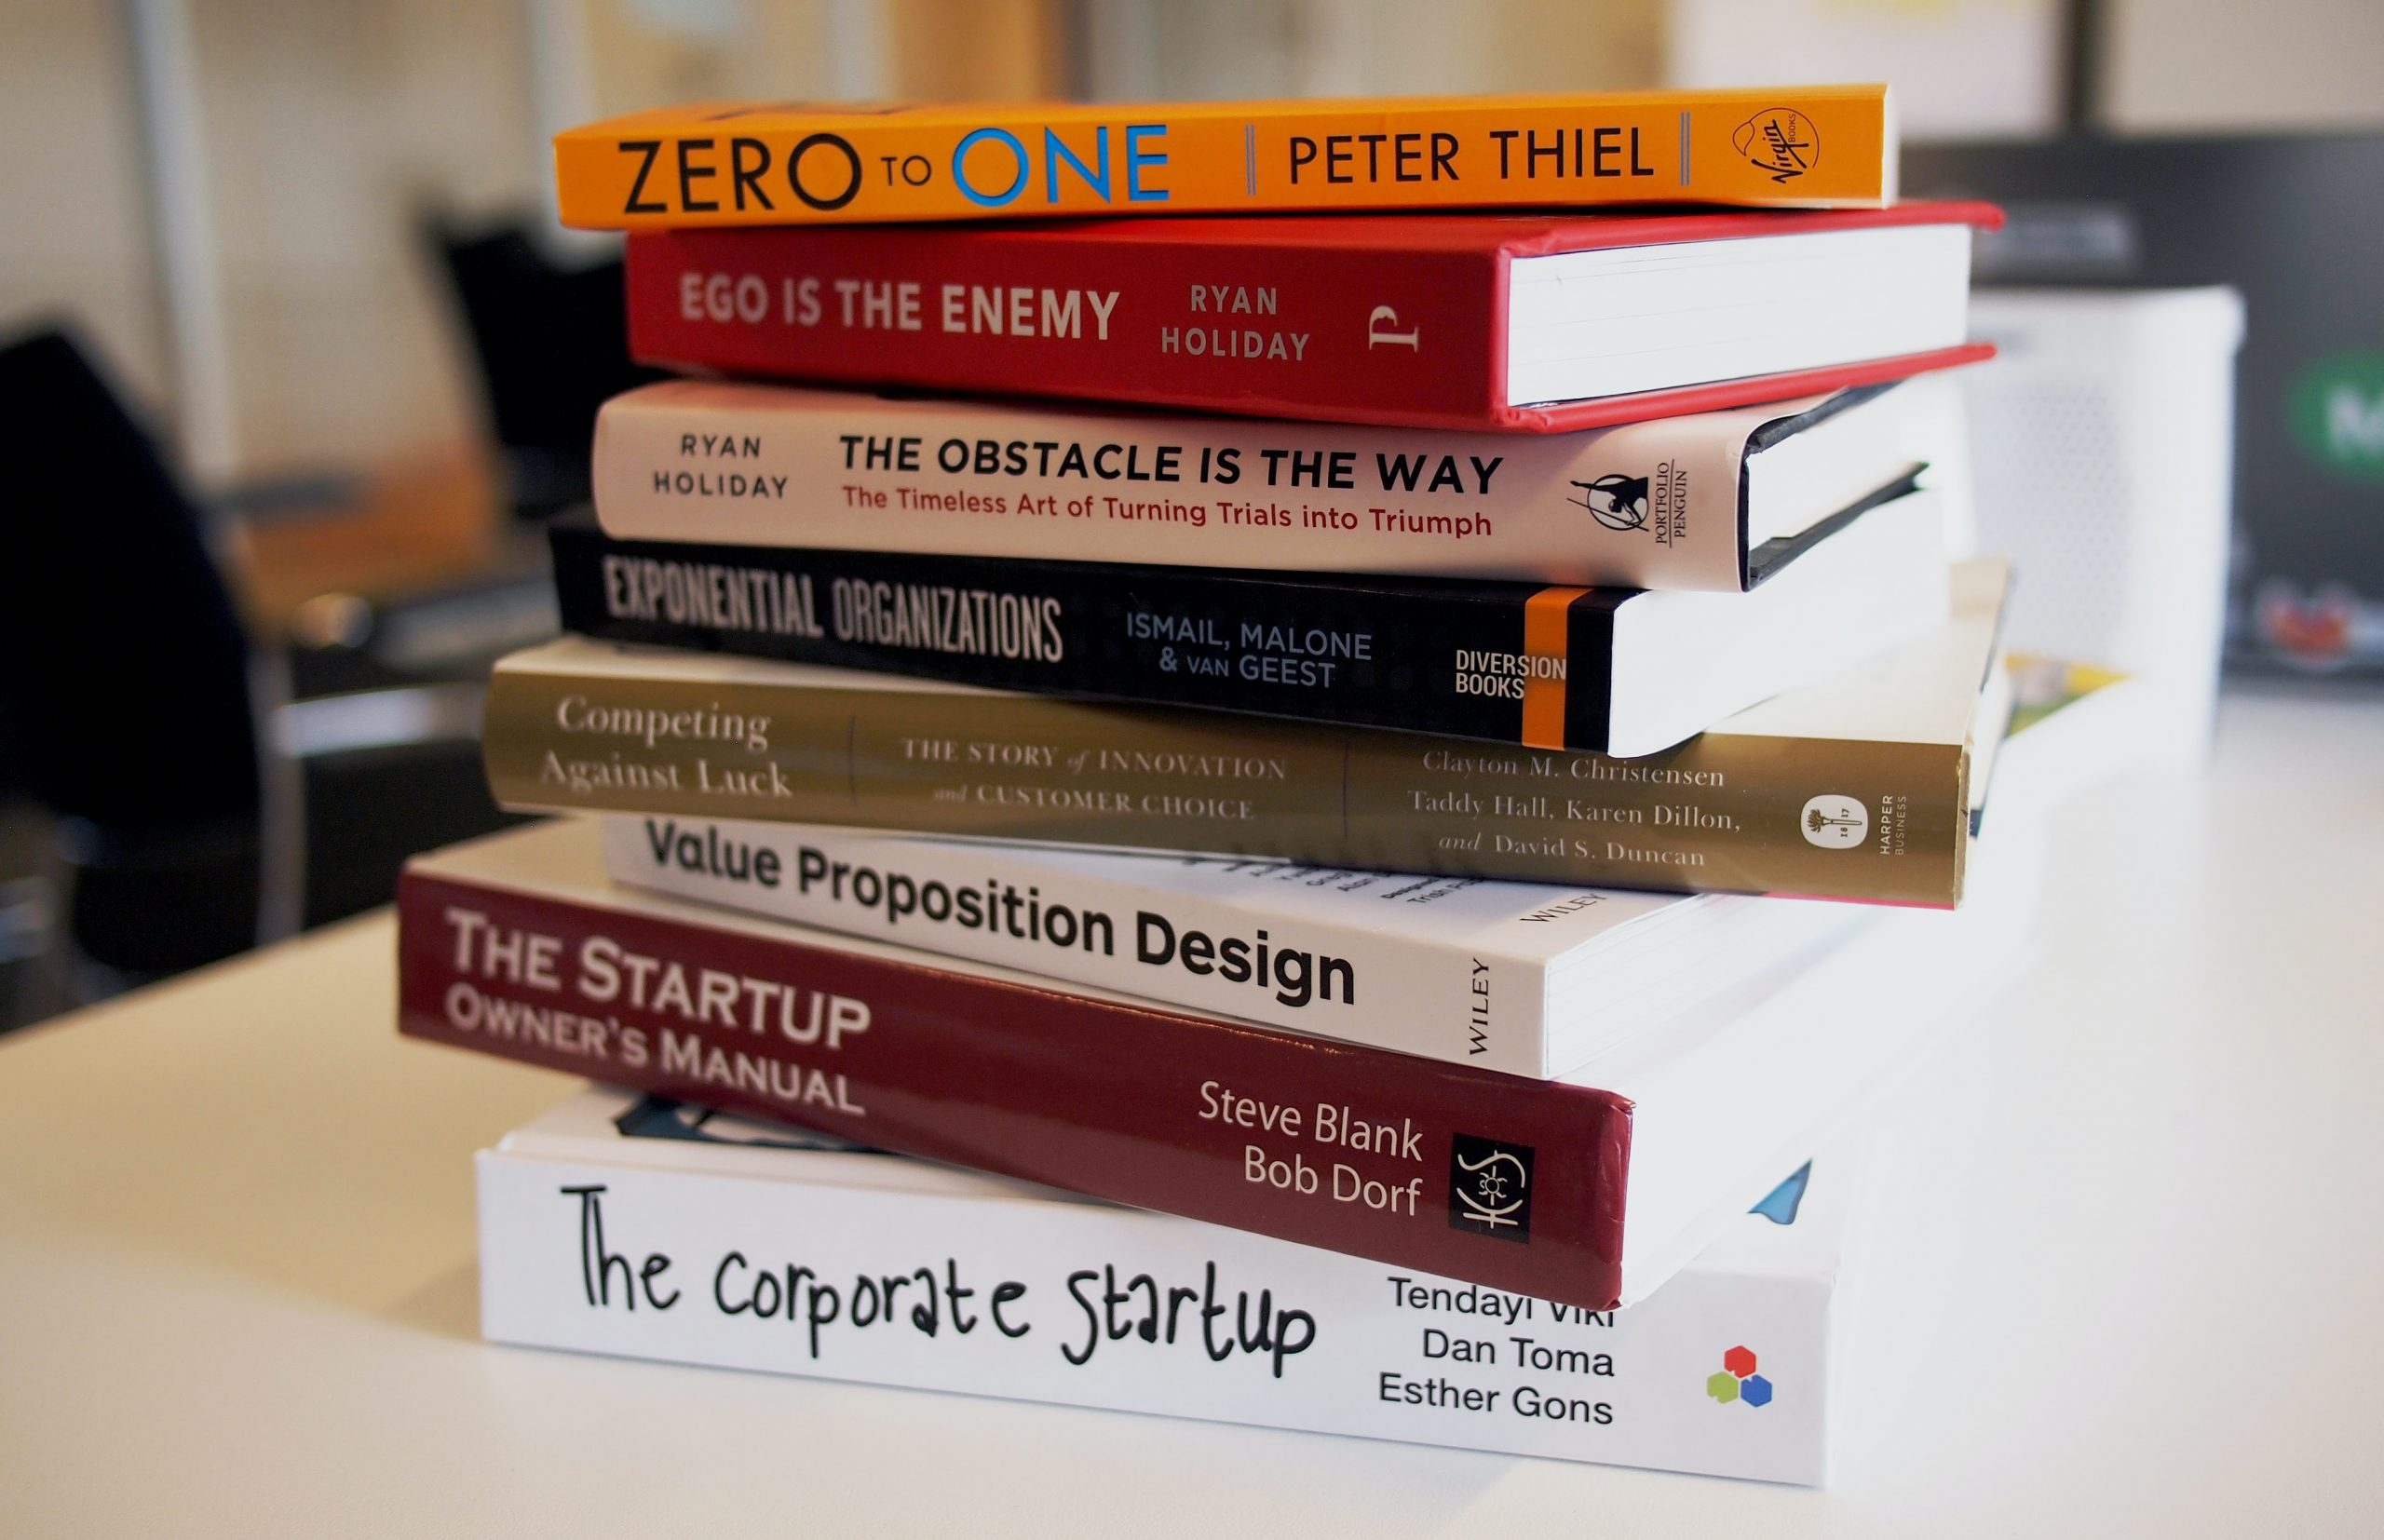 Startup Books reading brings success